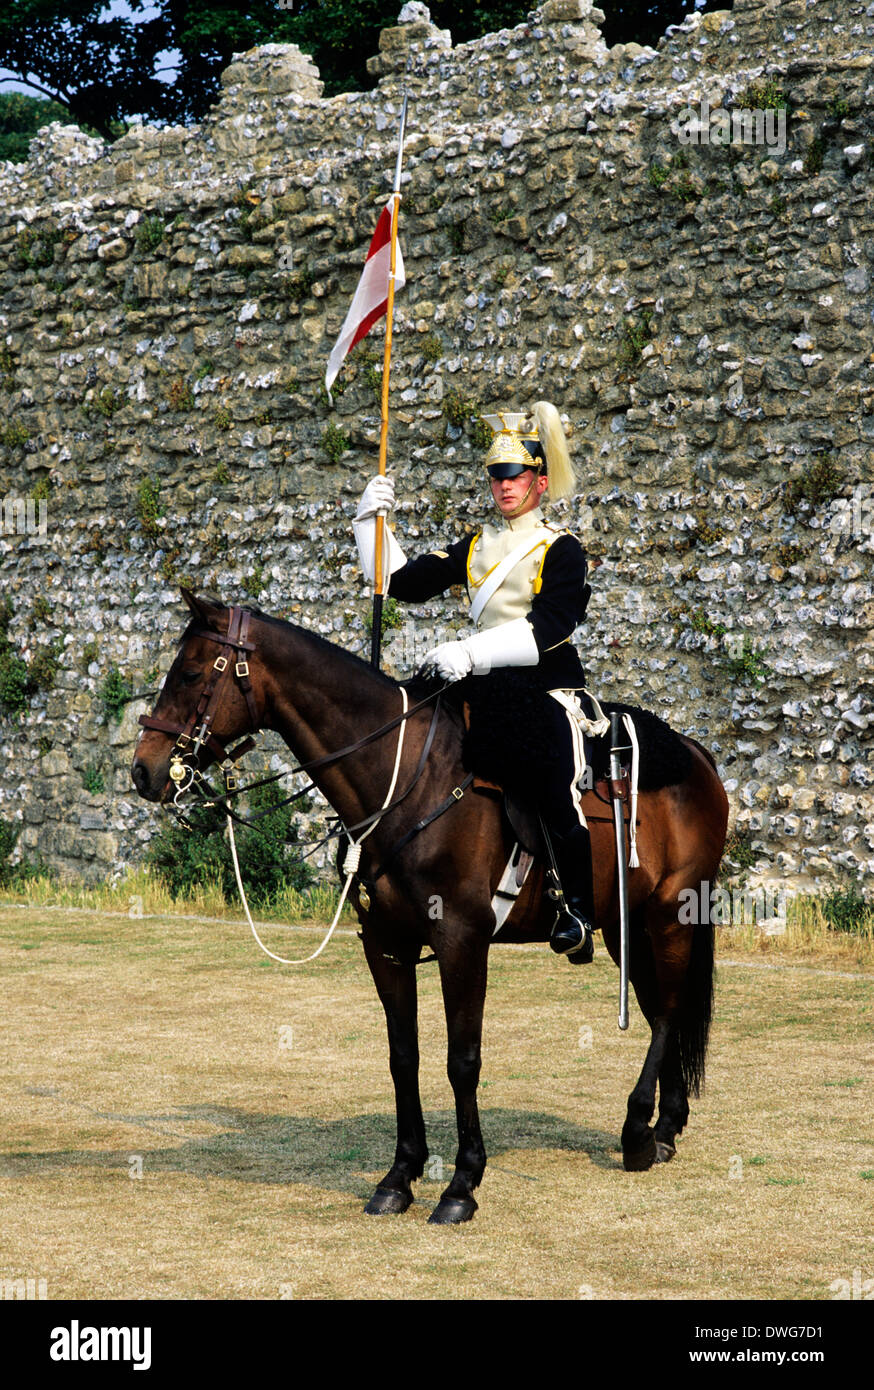 17th Lancers, British Dragoon Regiment, 1892, historical re-enactment army soldier soldiers cavalry late 19th century uniform uniforms England UK - Stock Image